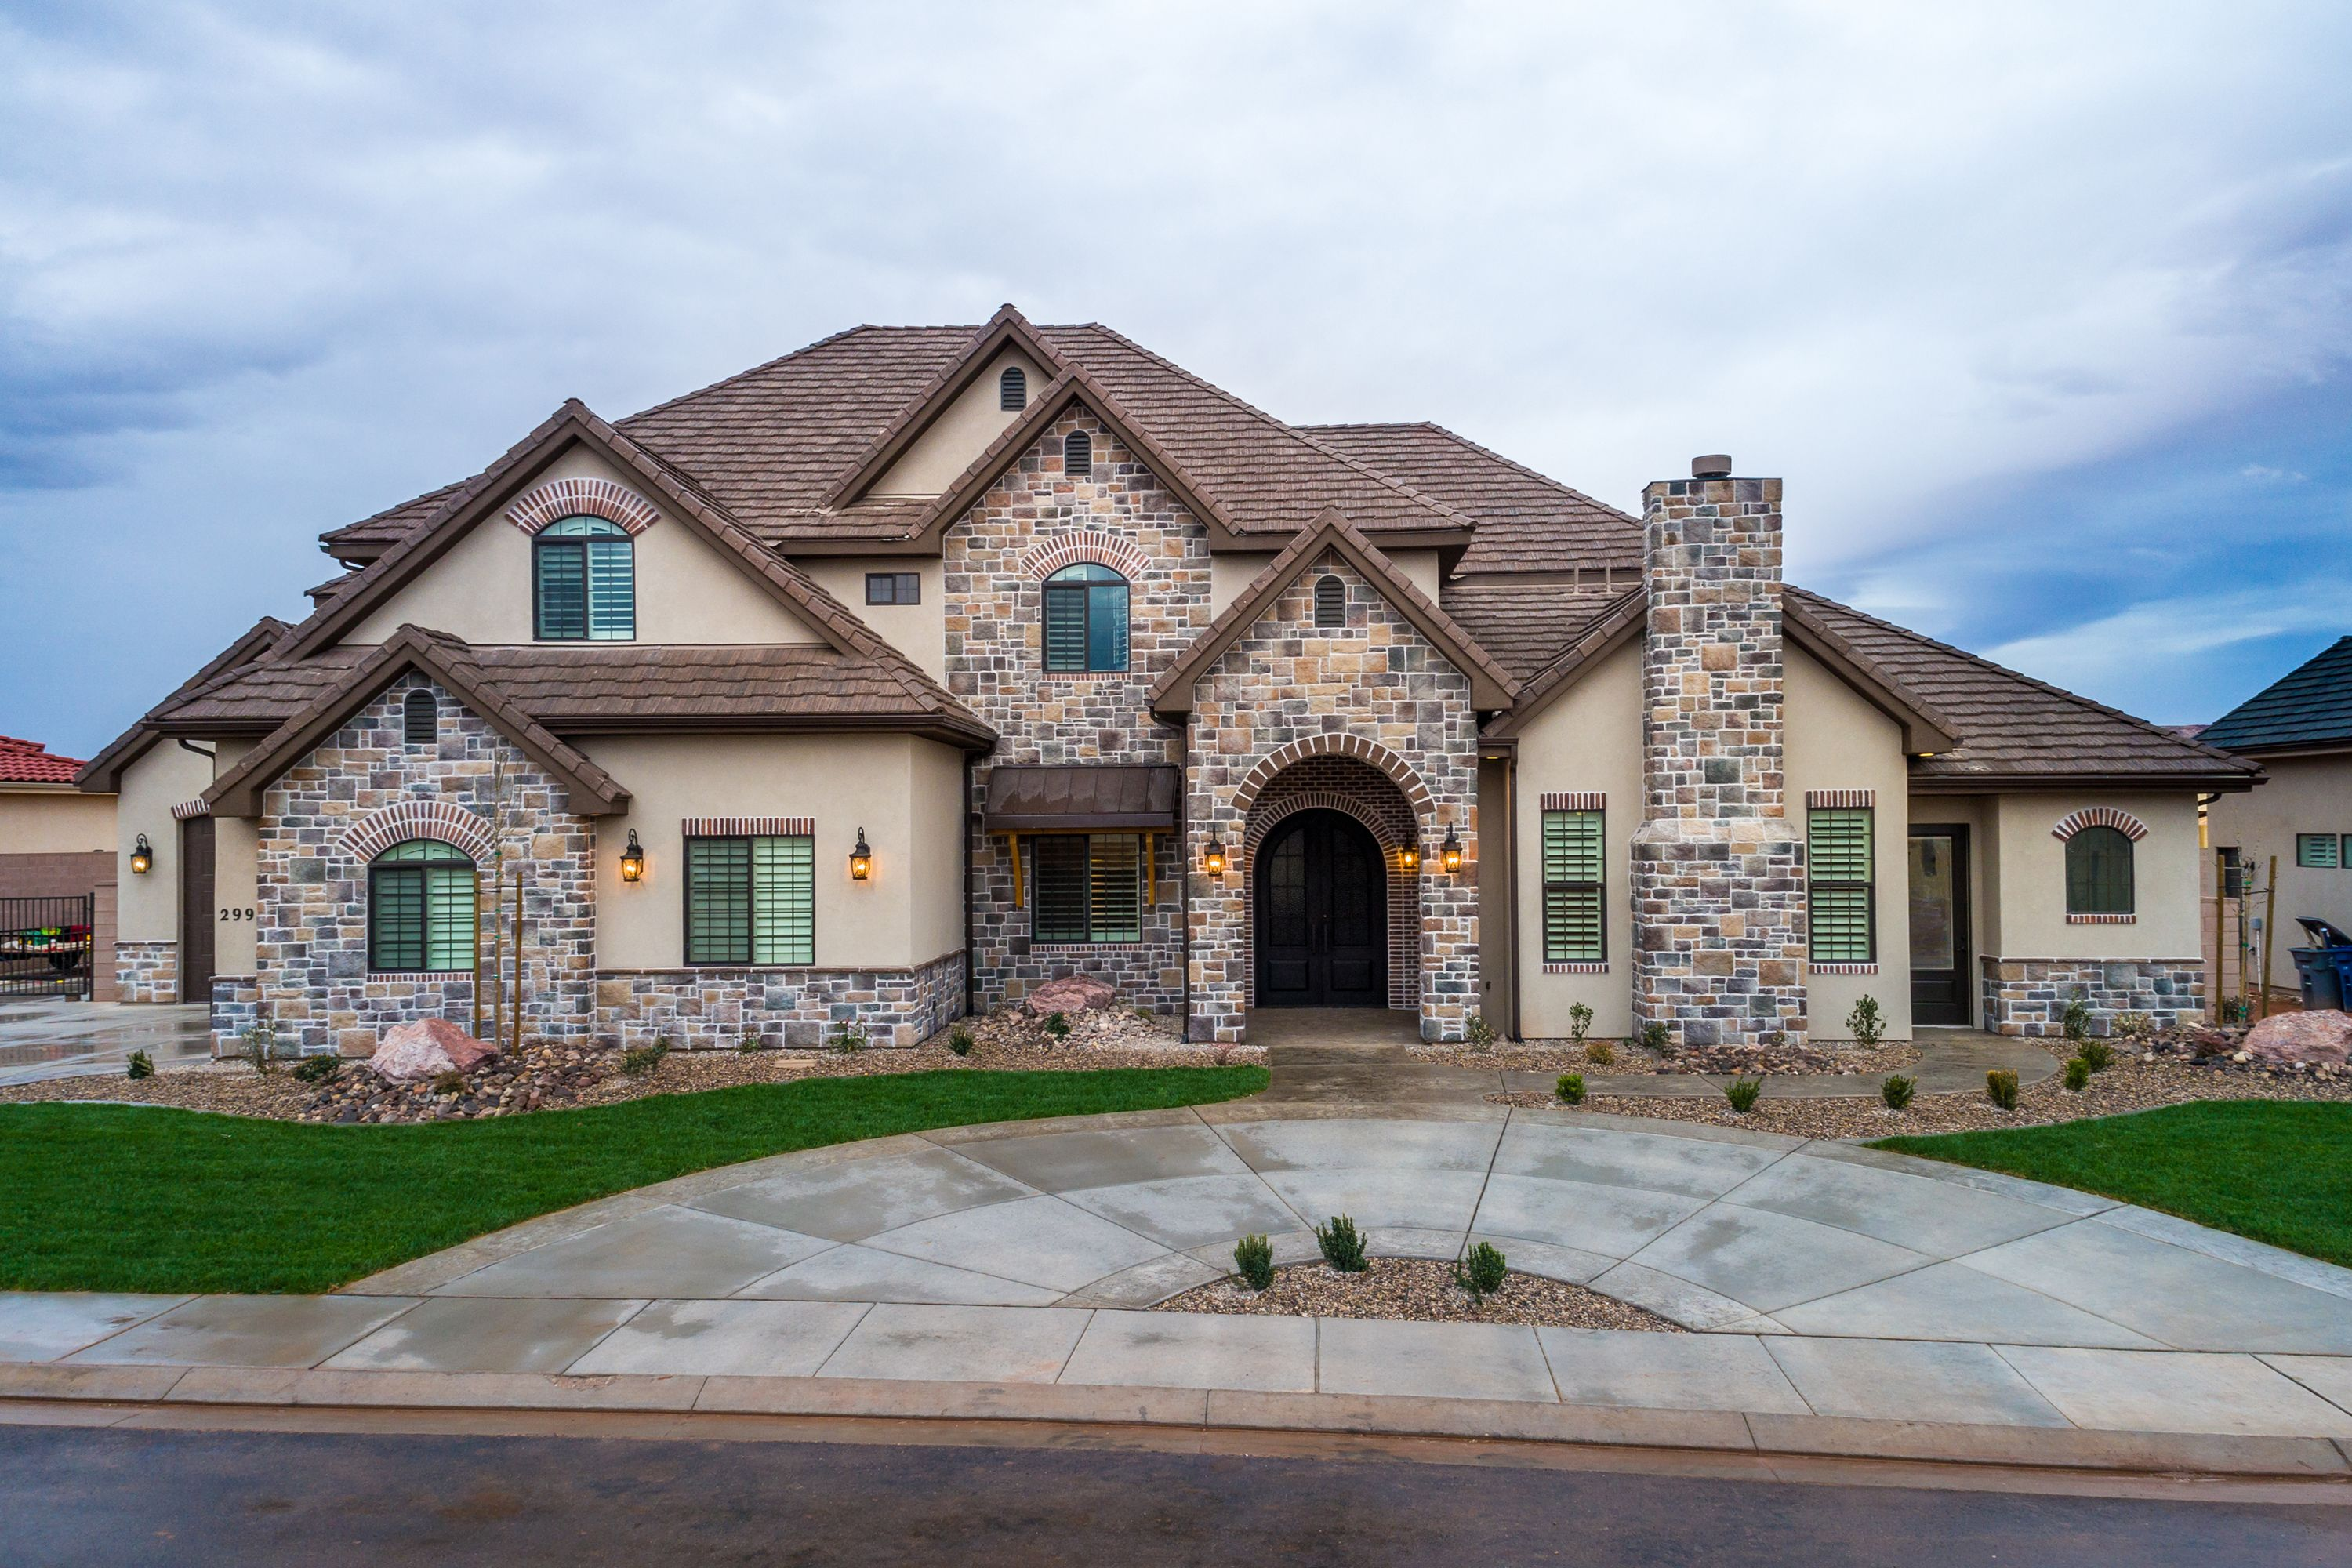 Luxury custom home in The Arbors by S&S Homes, St